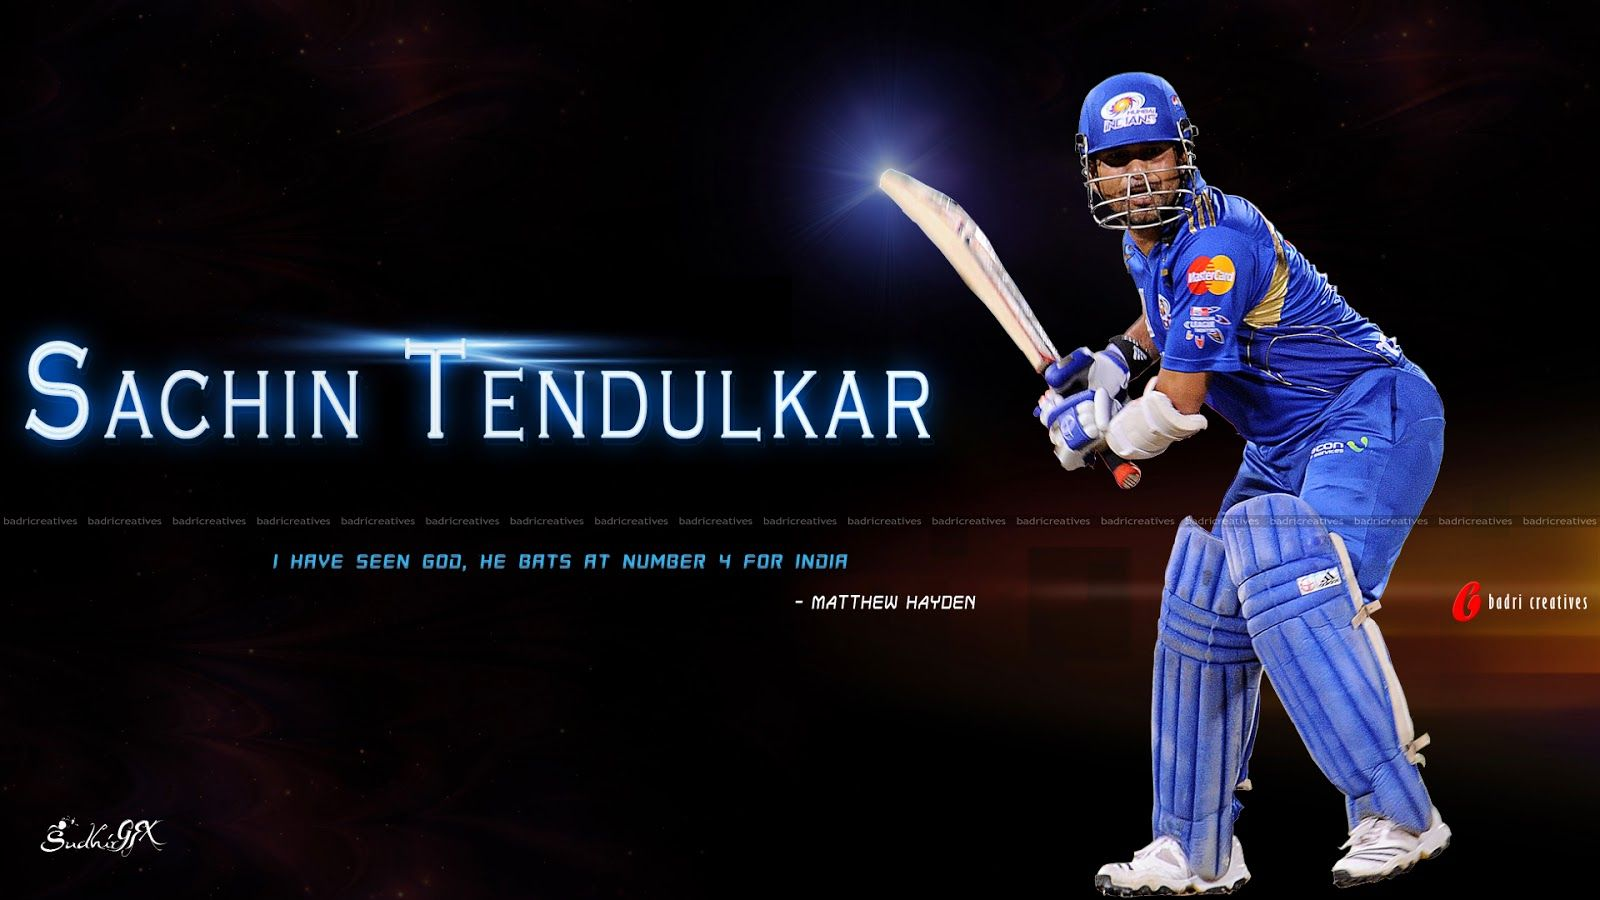 k ultra hd sachin tendulkar wallpapers hd desktop backgrounds | hd